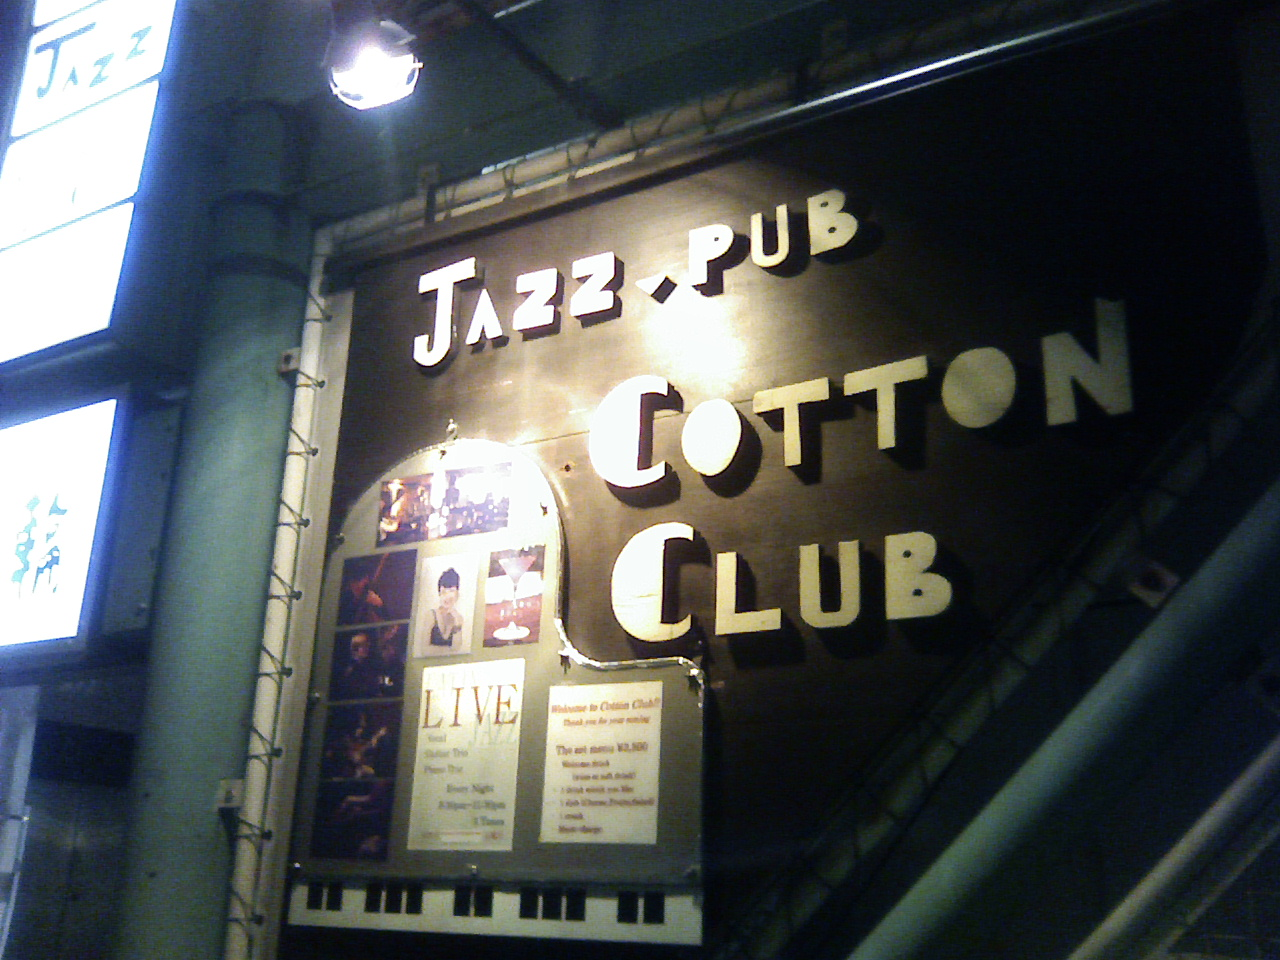 JAZZ&PUB COTTON CLUB